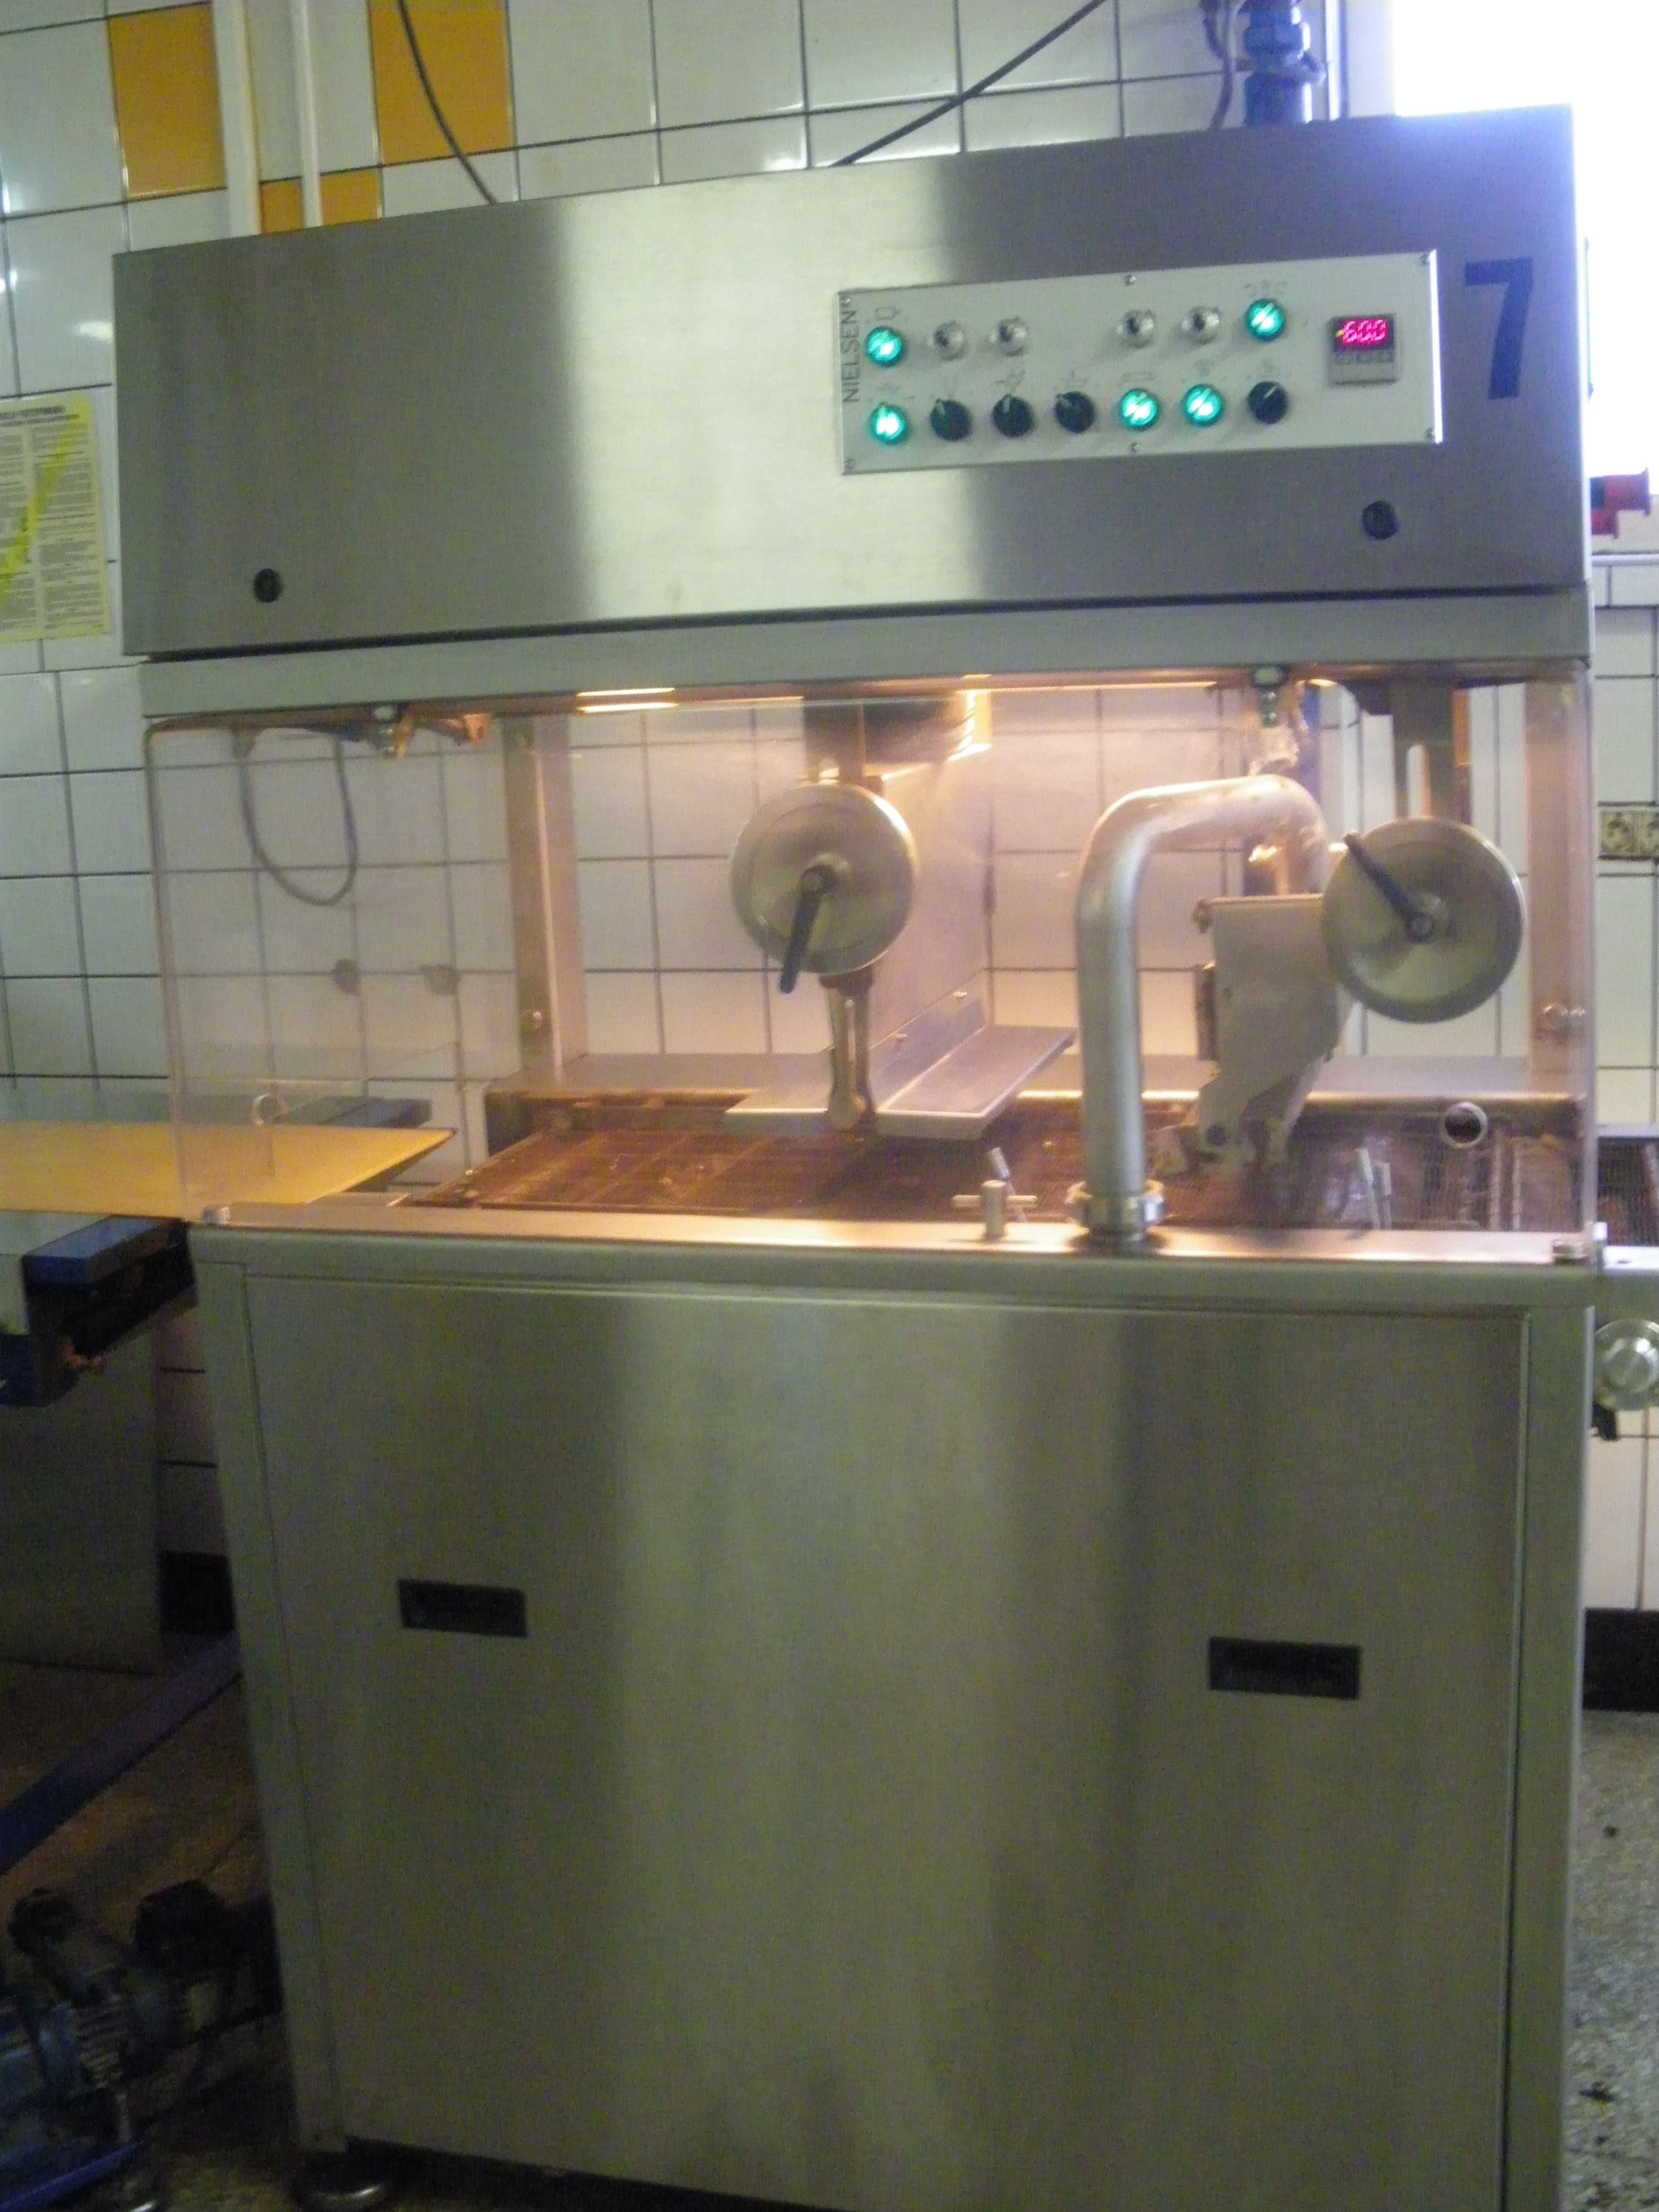 Tunnel de cuisson nielsen machines d 39 occasion exapro for Machine de cuisson